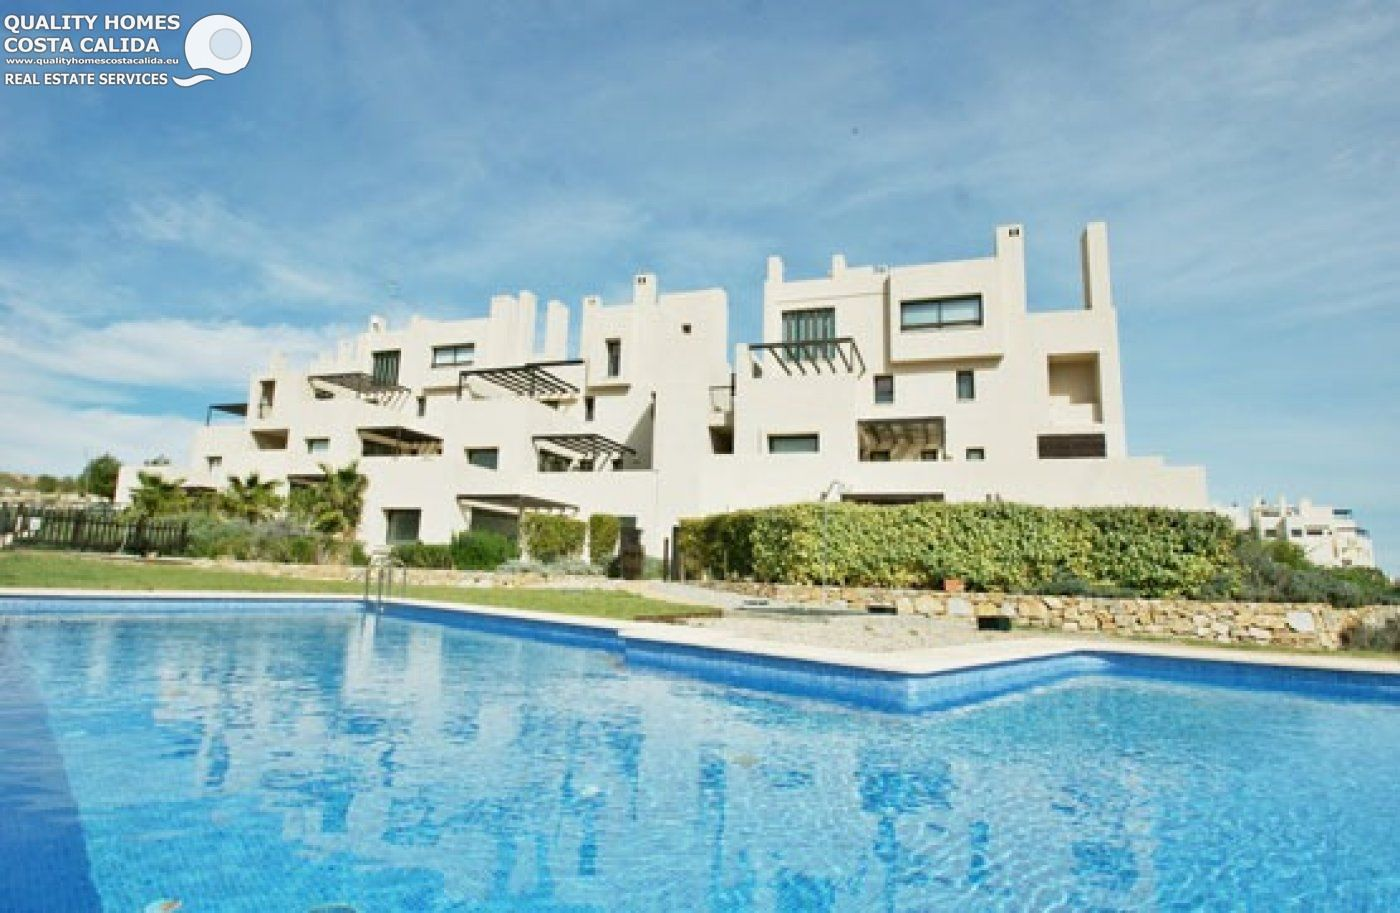 Apartment ref 3265-02949 for sale in Corvera Spain - Quality Homes Costa Cálida